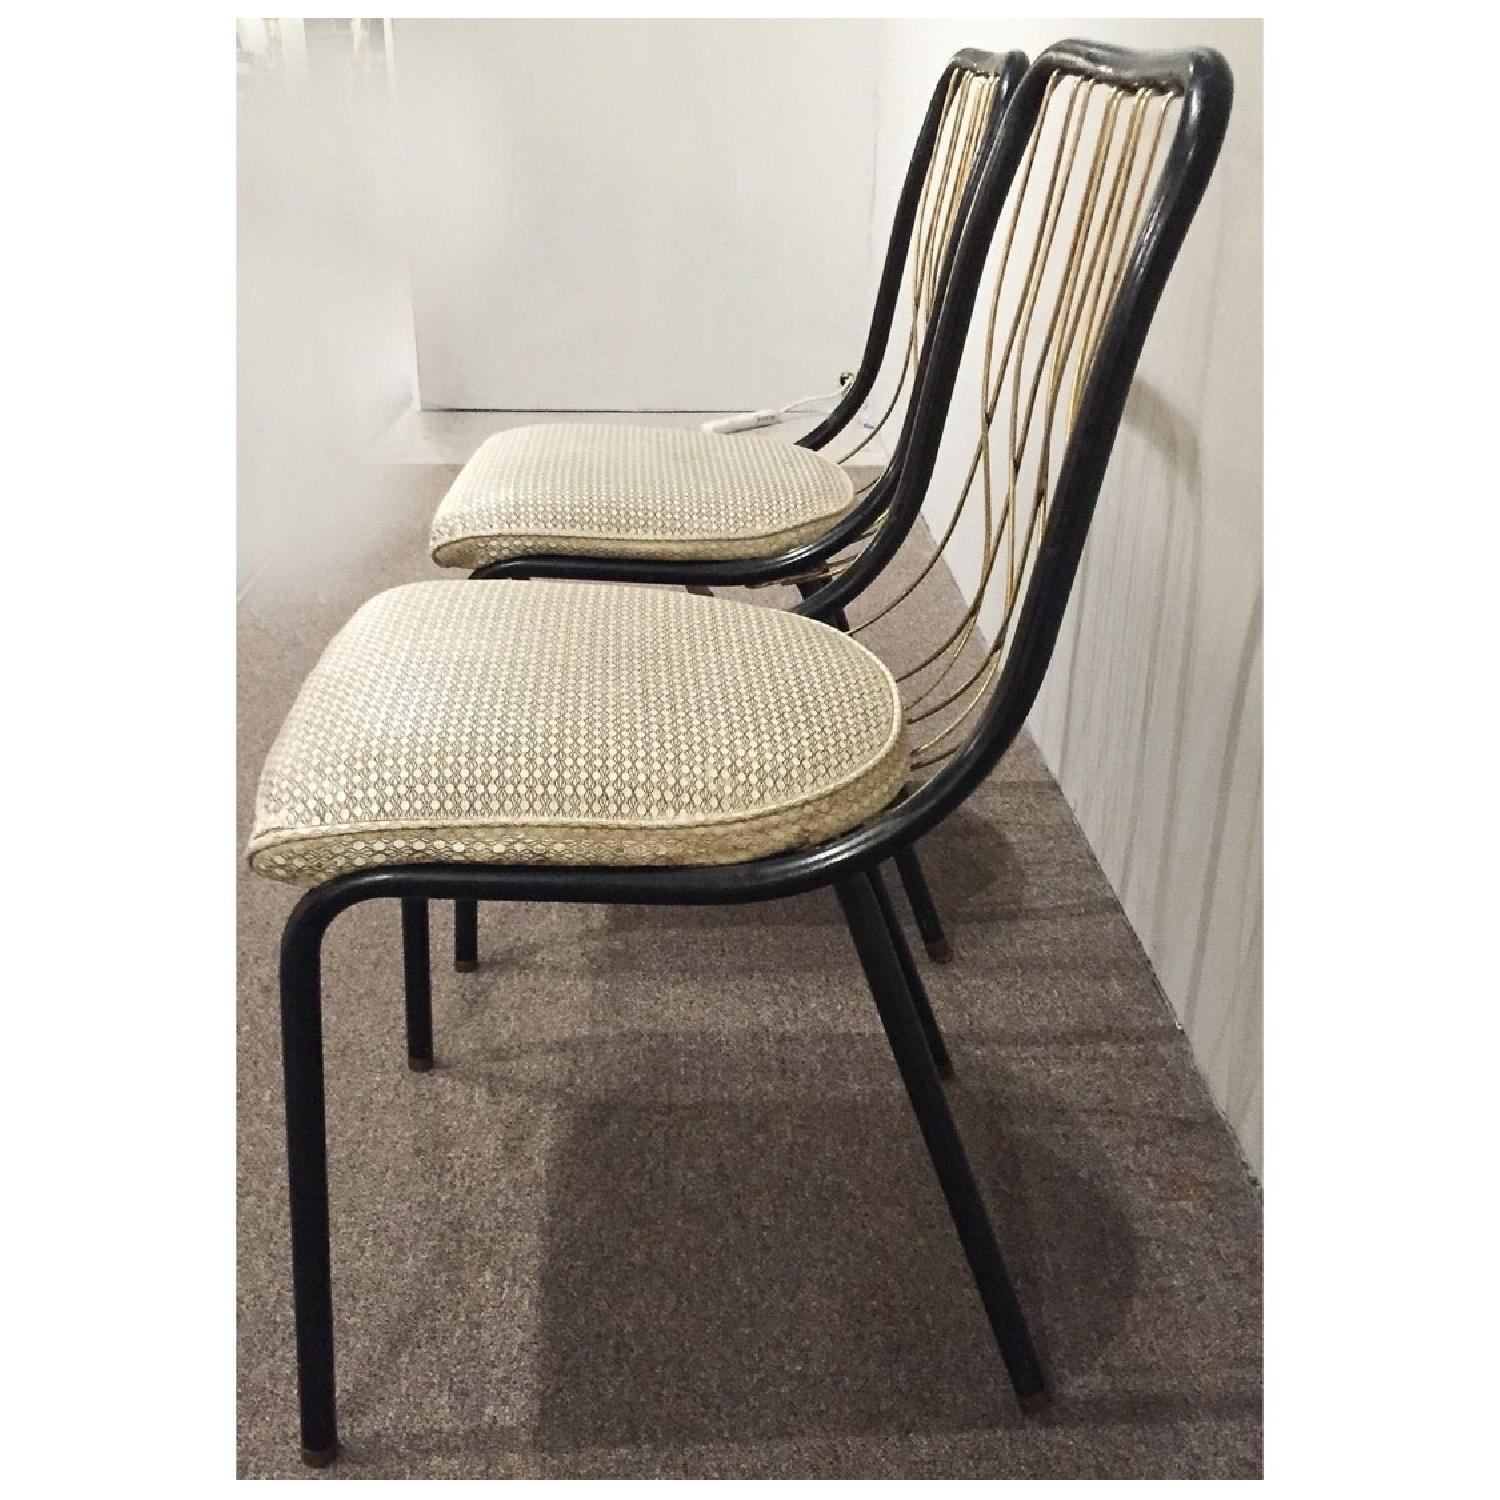 Vintage French Art Deco Brass & Leather Chairs - image-2